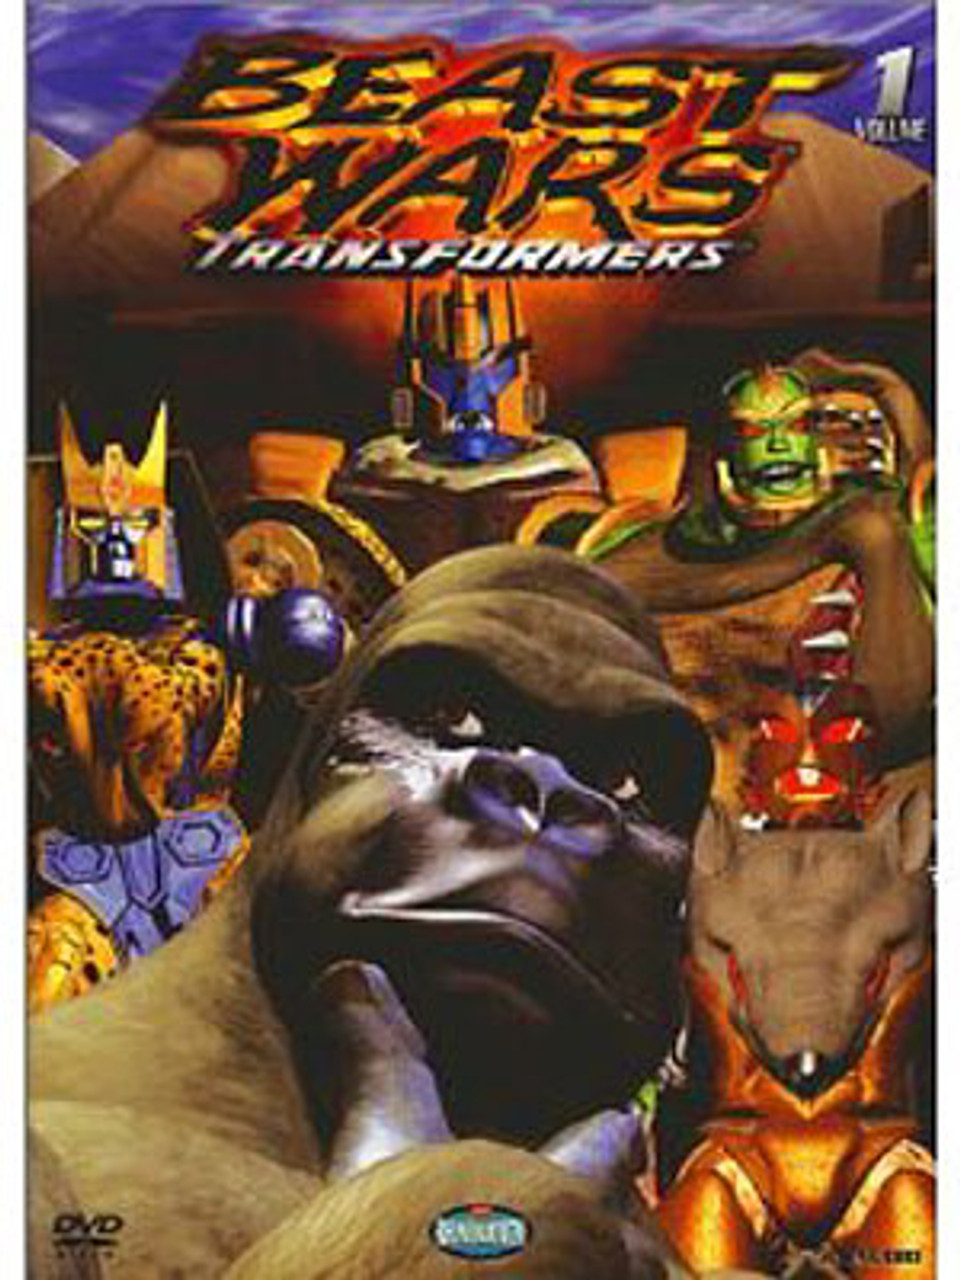 Transformers Beast Wars Volume 1 DVD